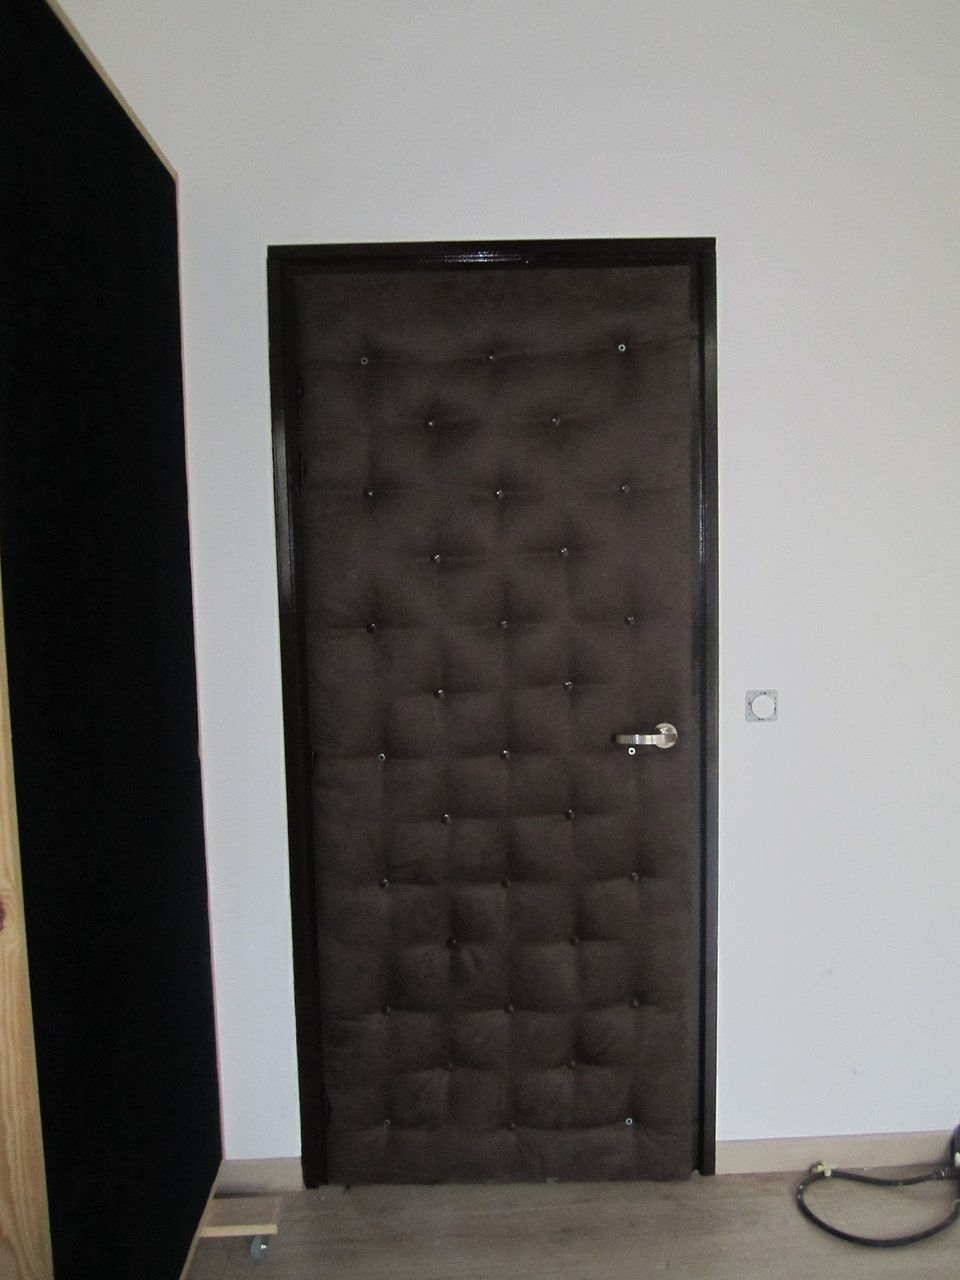 isolation phonique mur appartement isolation phonique mur d 39 appartement forum isolation. Black Bedroom Furniture Sets. Home Design Ideas